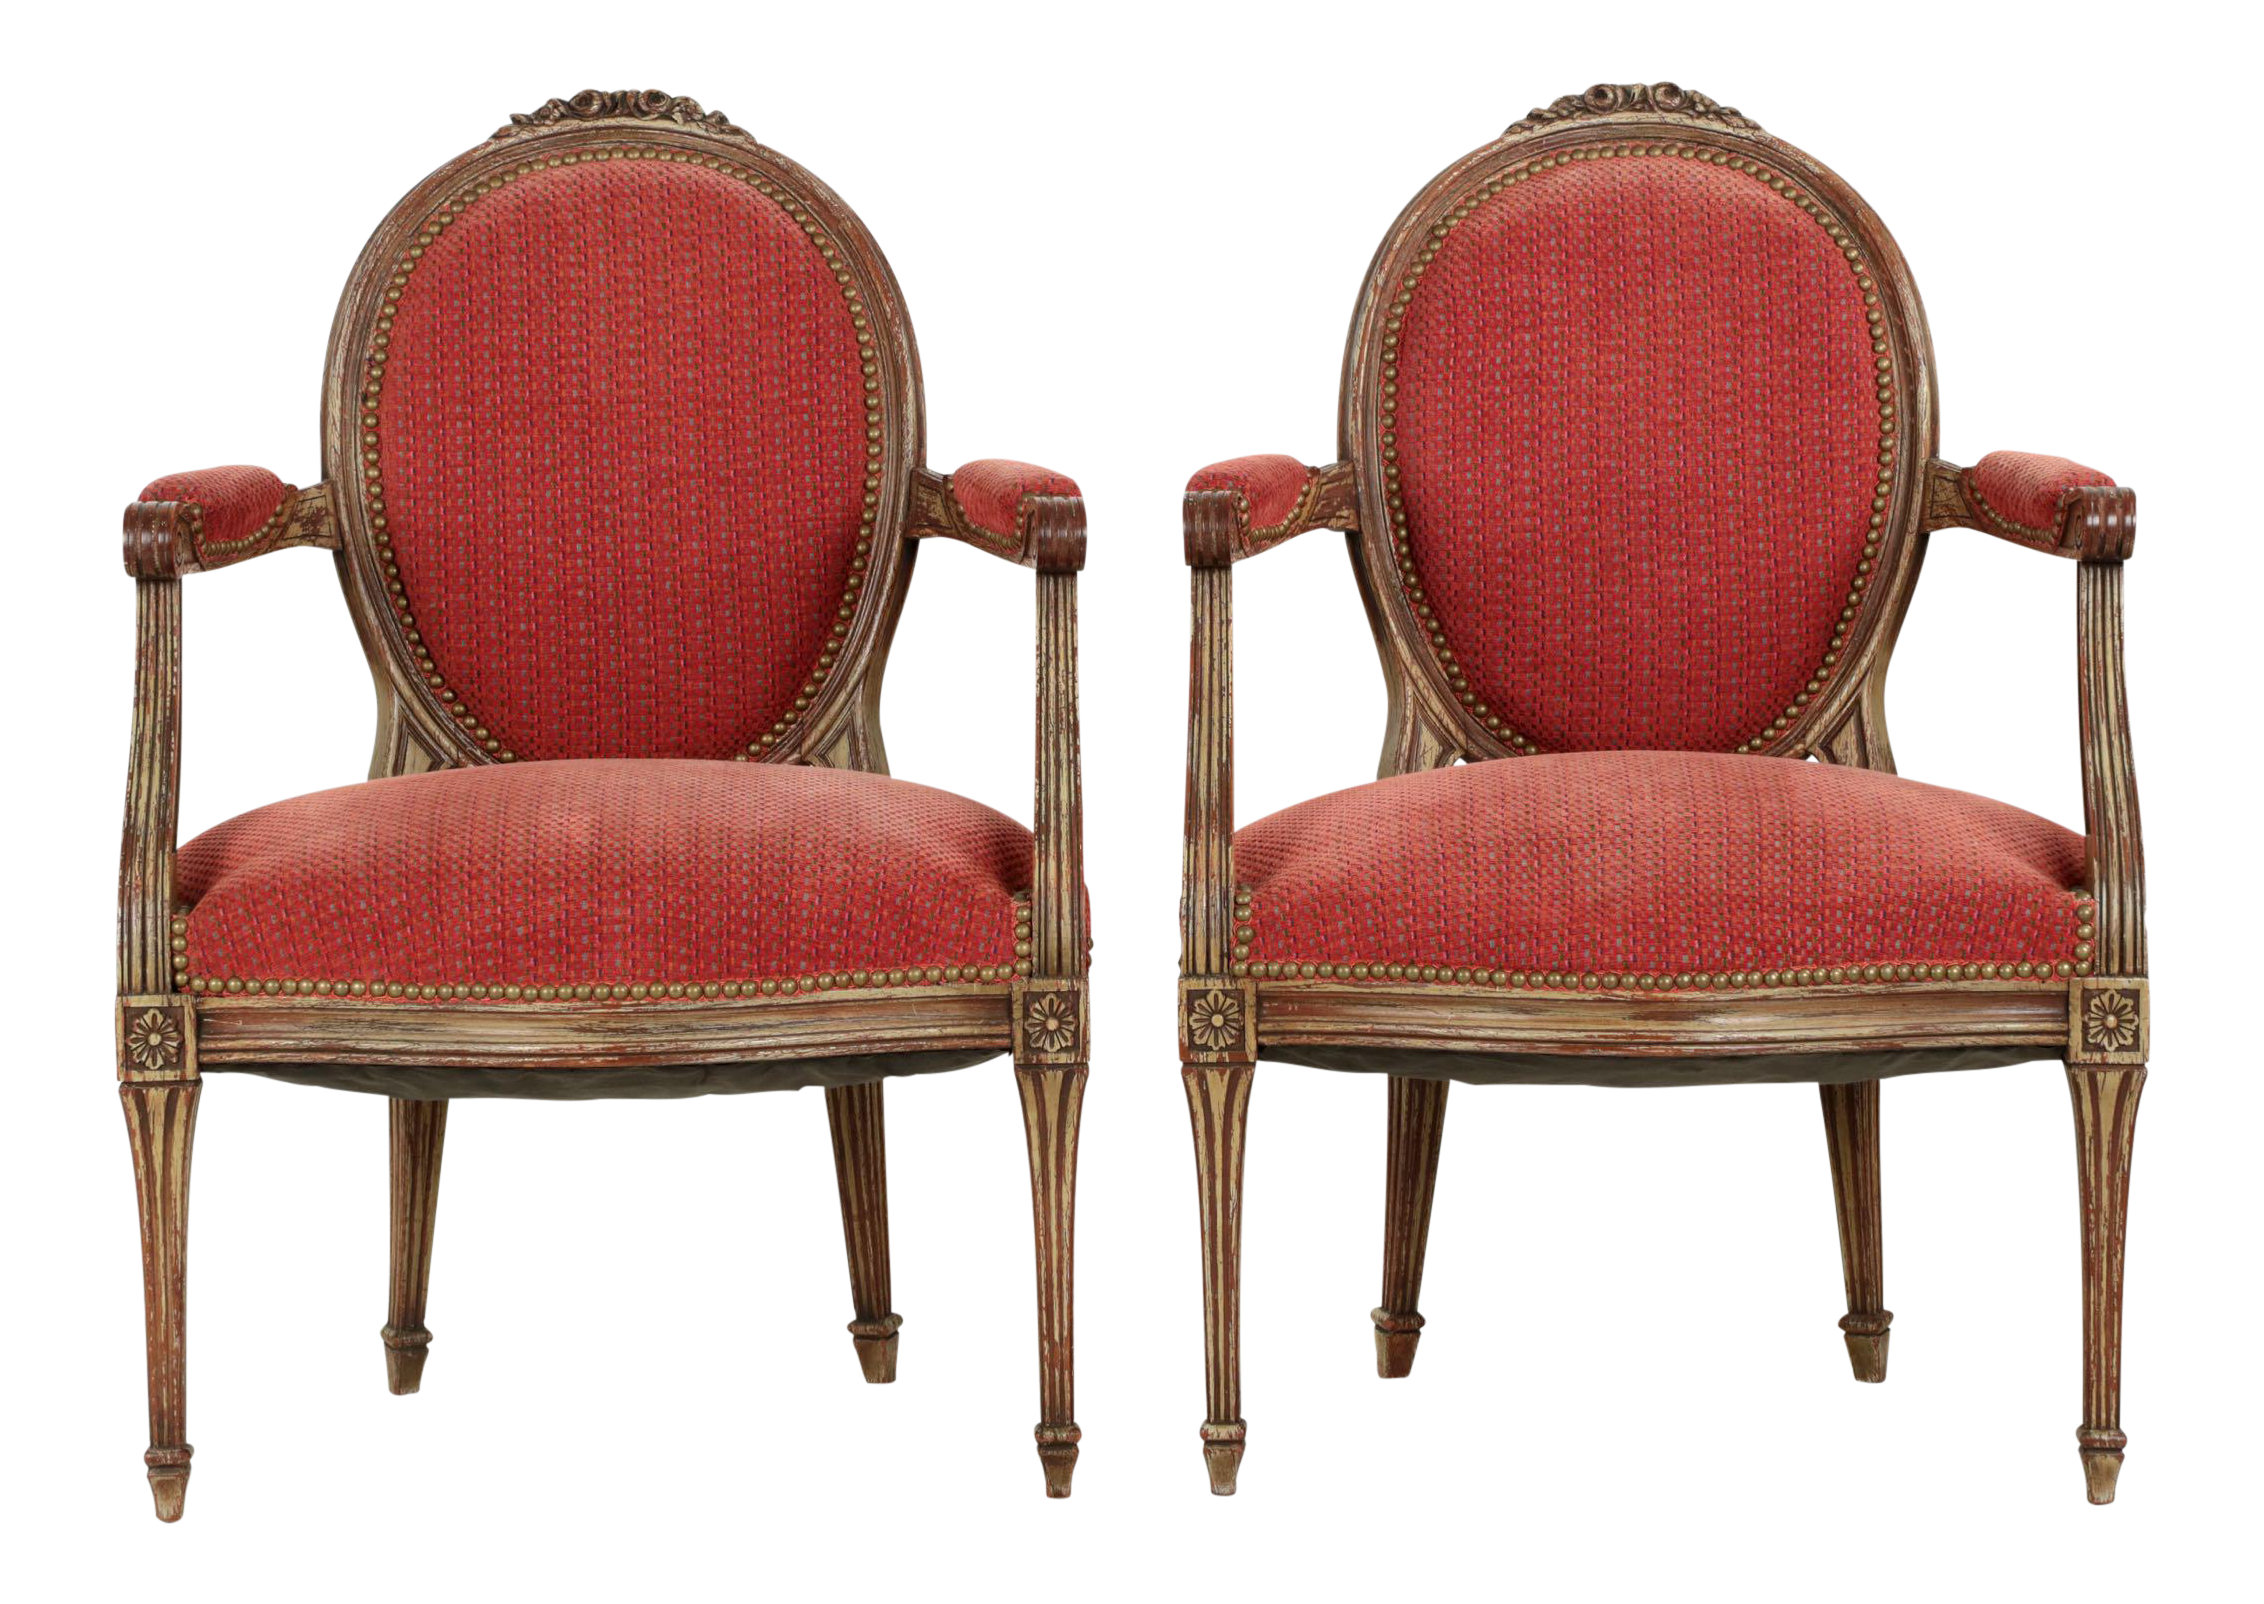 Vintage French Louis XVI Style Gray Painted Fauteuil Arm Chairs